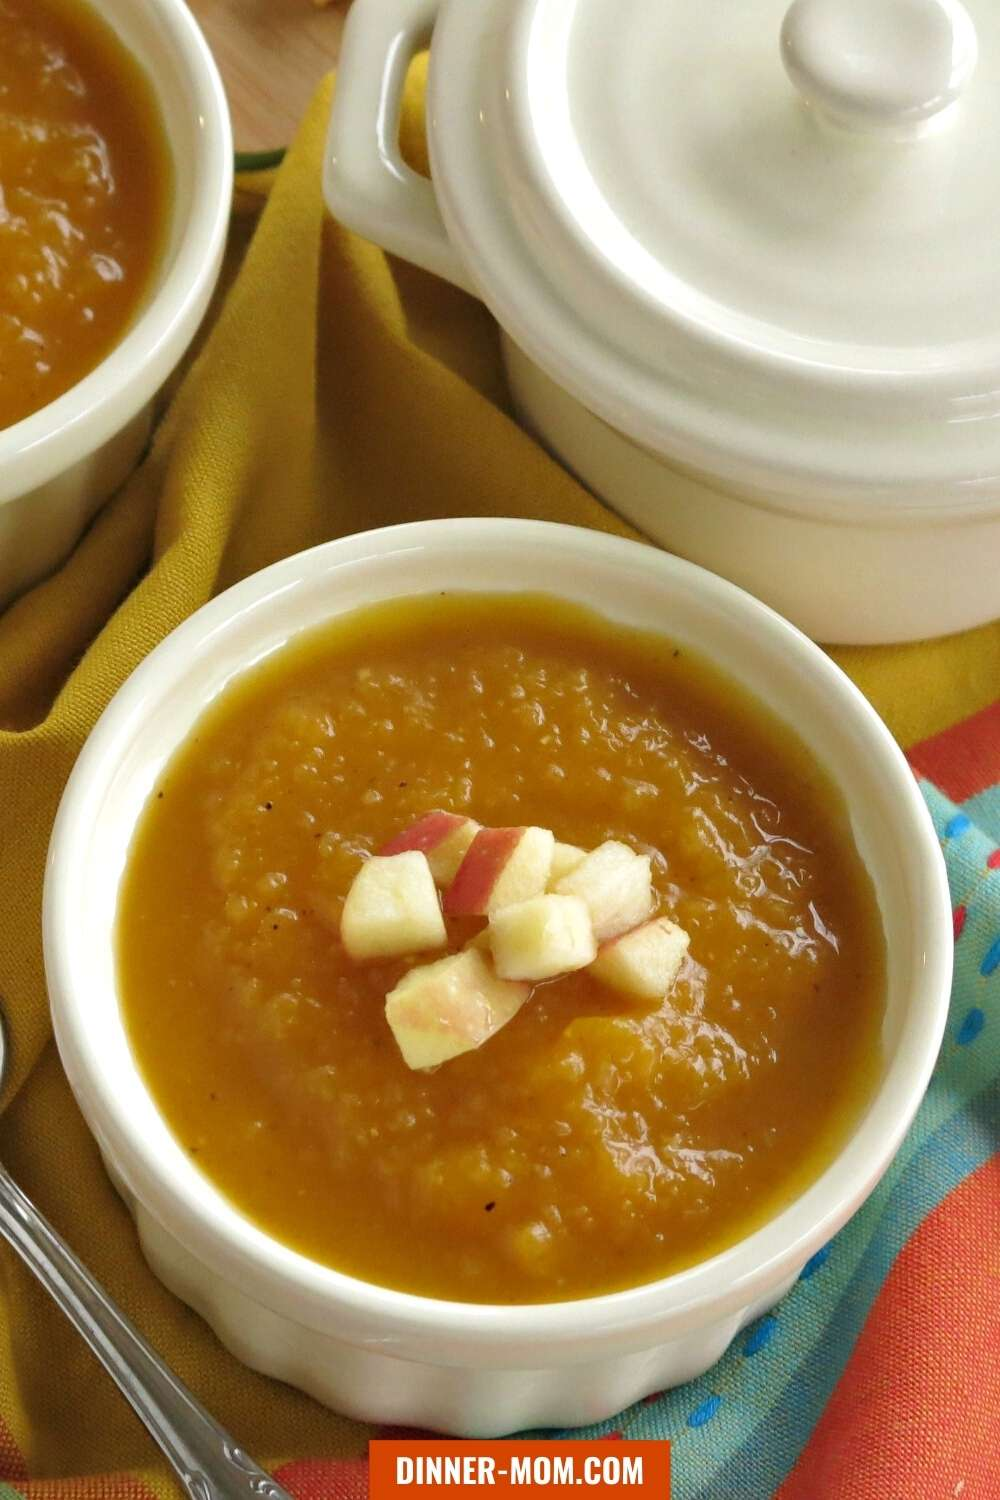 Apple Butternut Squash Soup in a small bowl with covered bowl behind it.